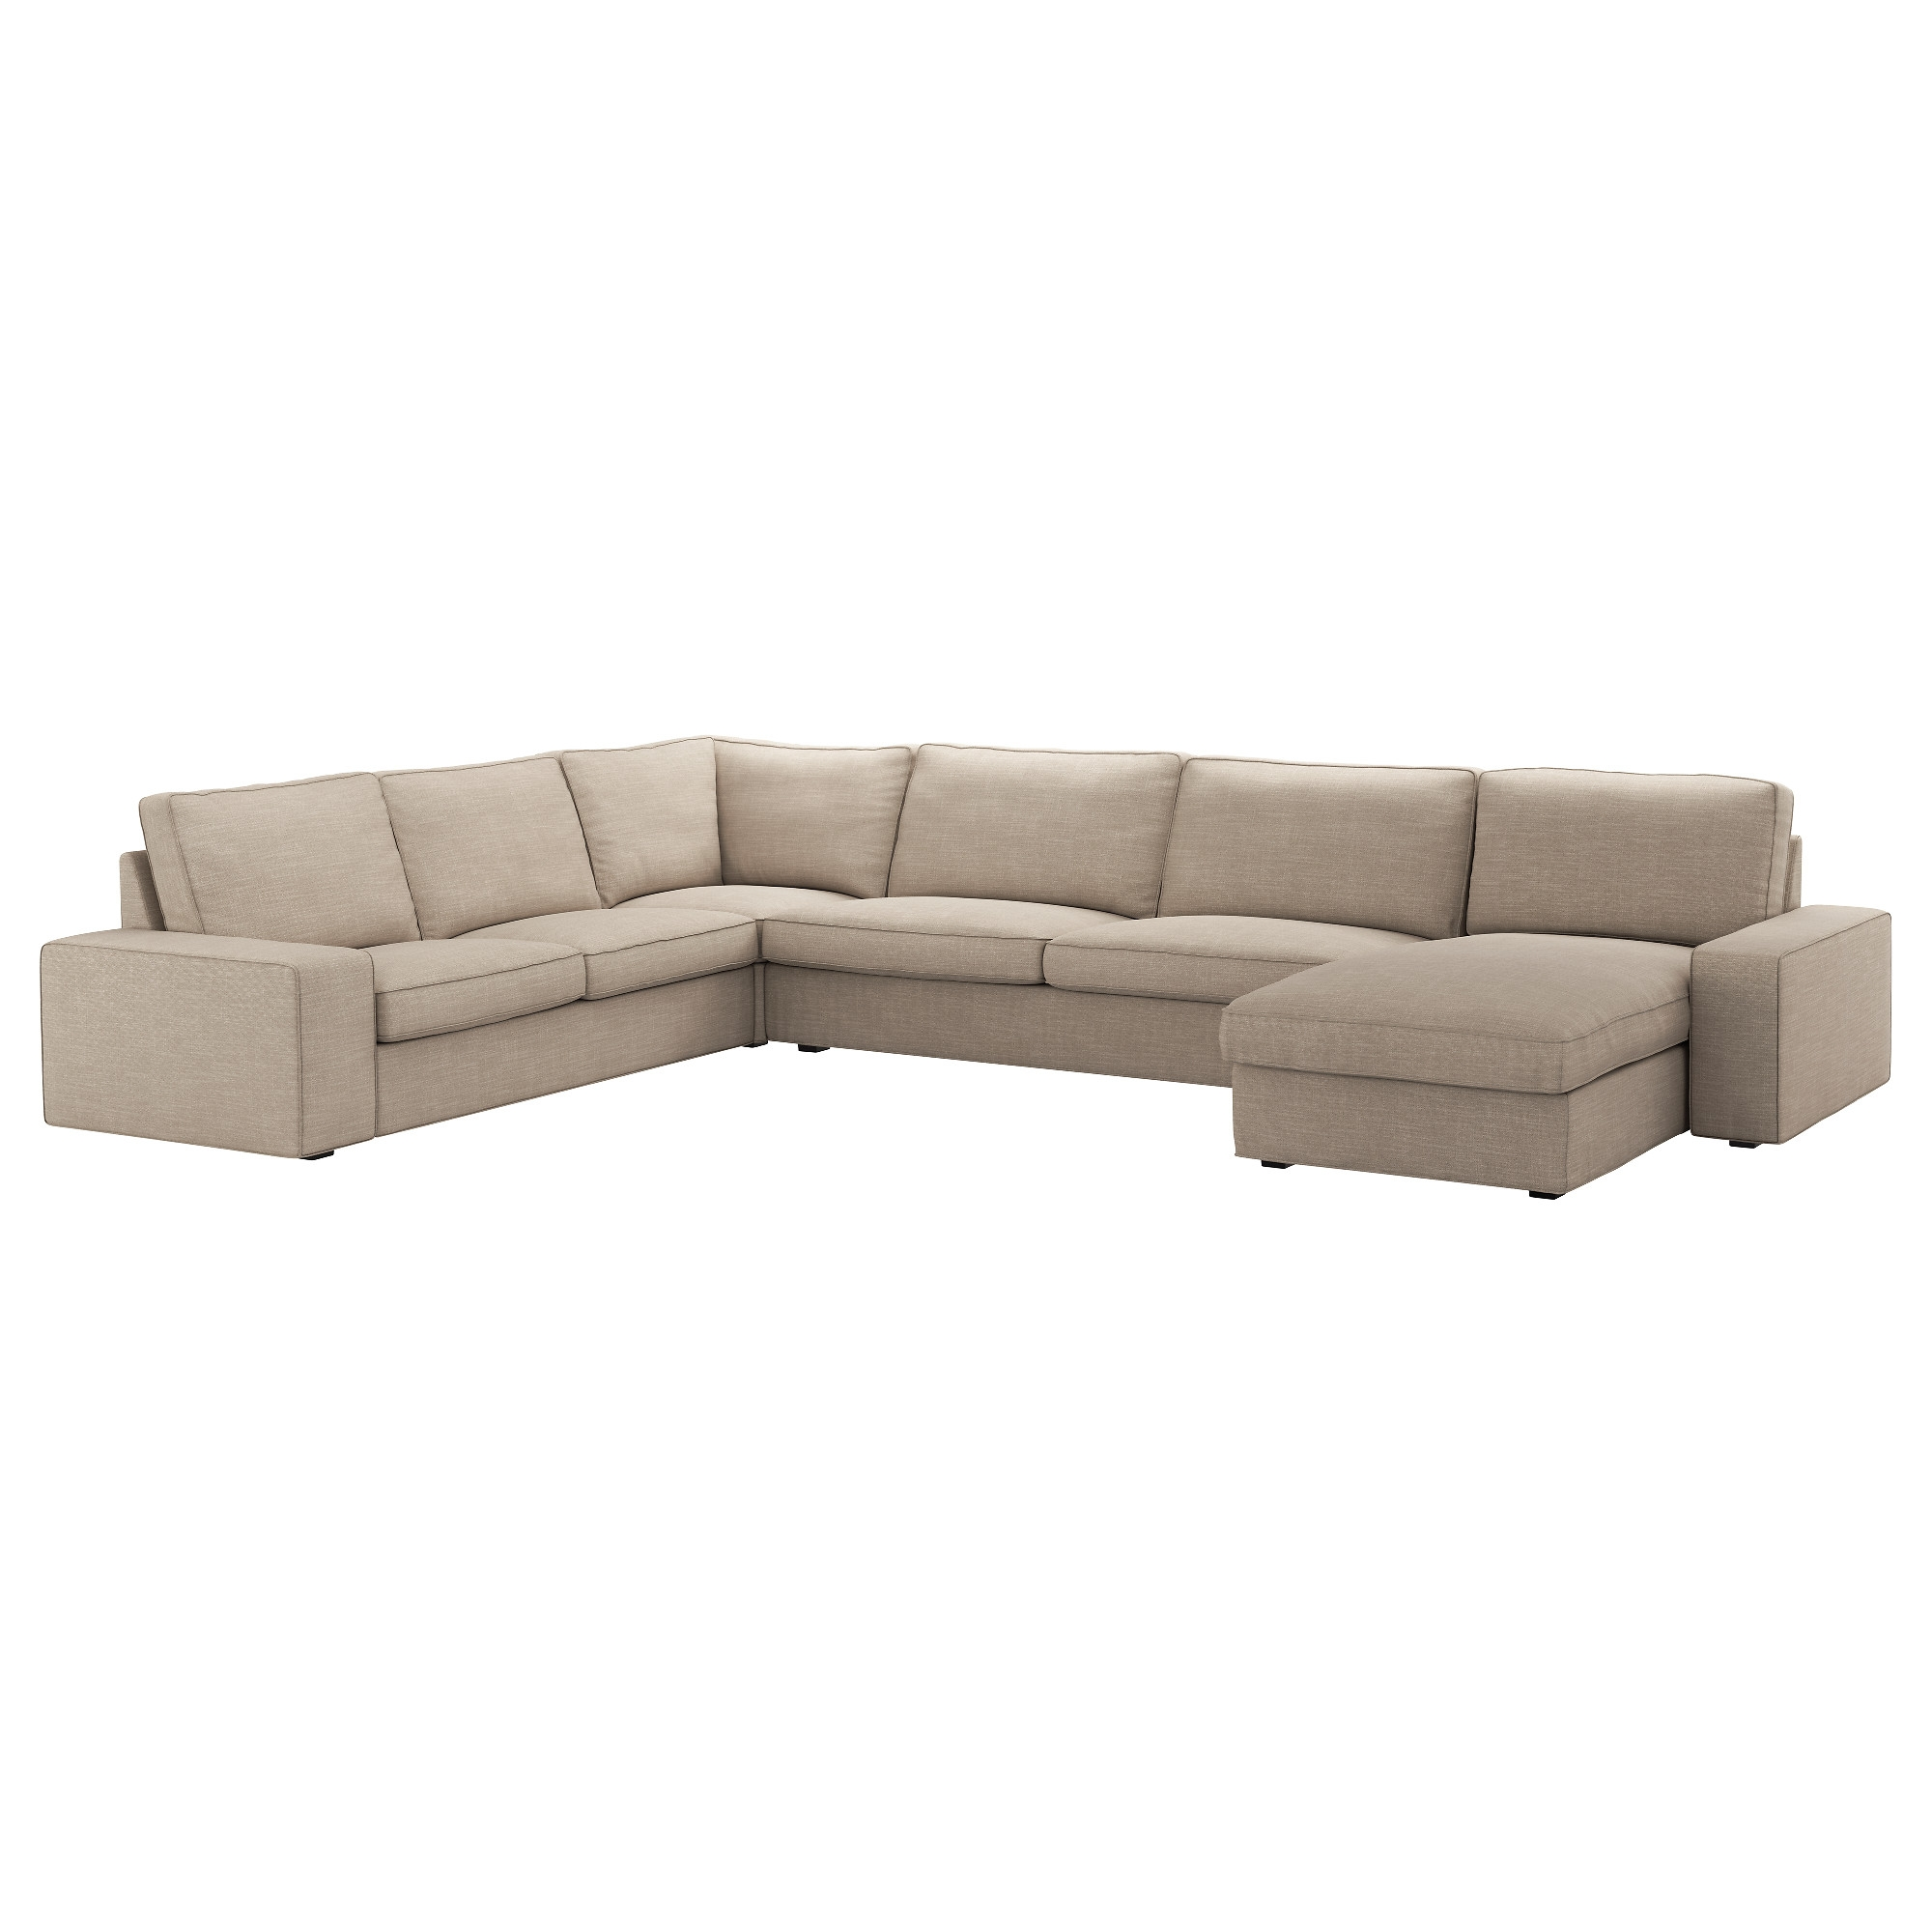 Kivik Sofa 6 Seats With Chaise Longue With Hillared Beige Cover